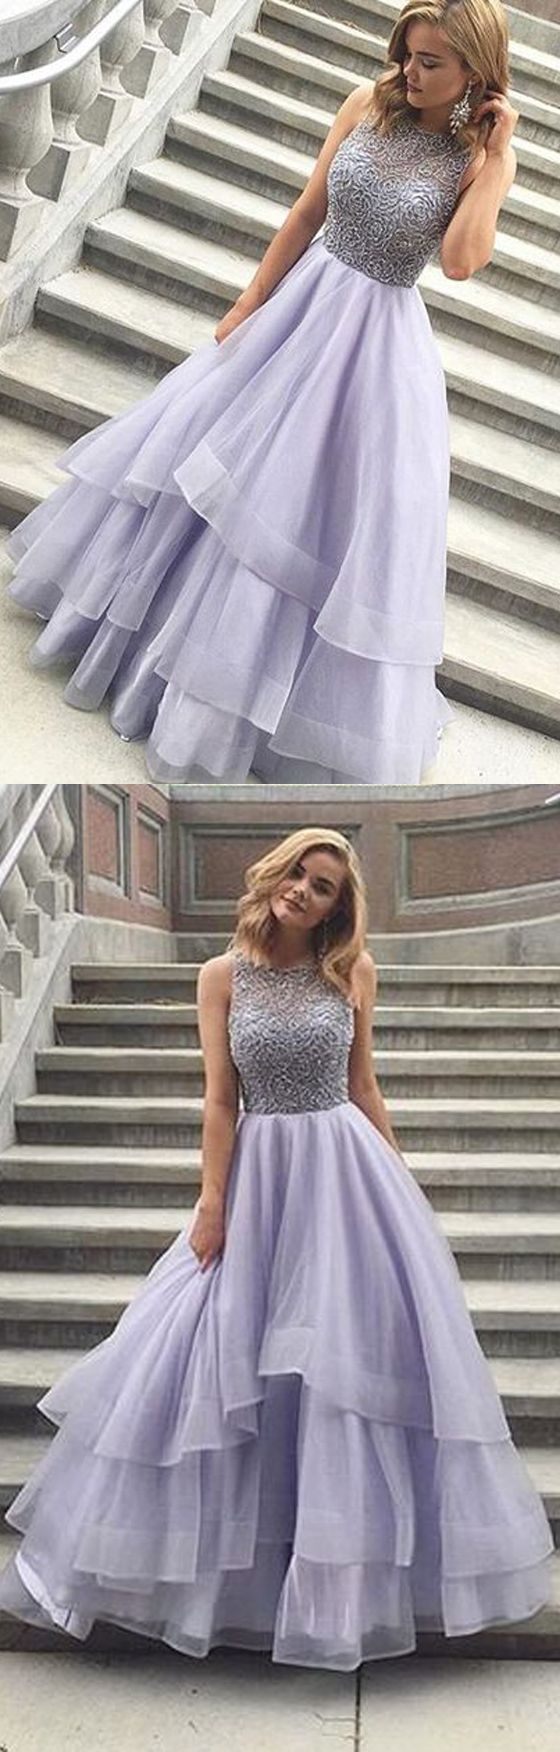 Lavender prom dress, charming prom dress, inexpensive prom dress ball gown, evening dress, popular online prom dress, long prom dresses, 15431